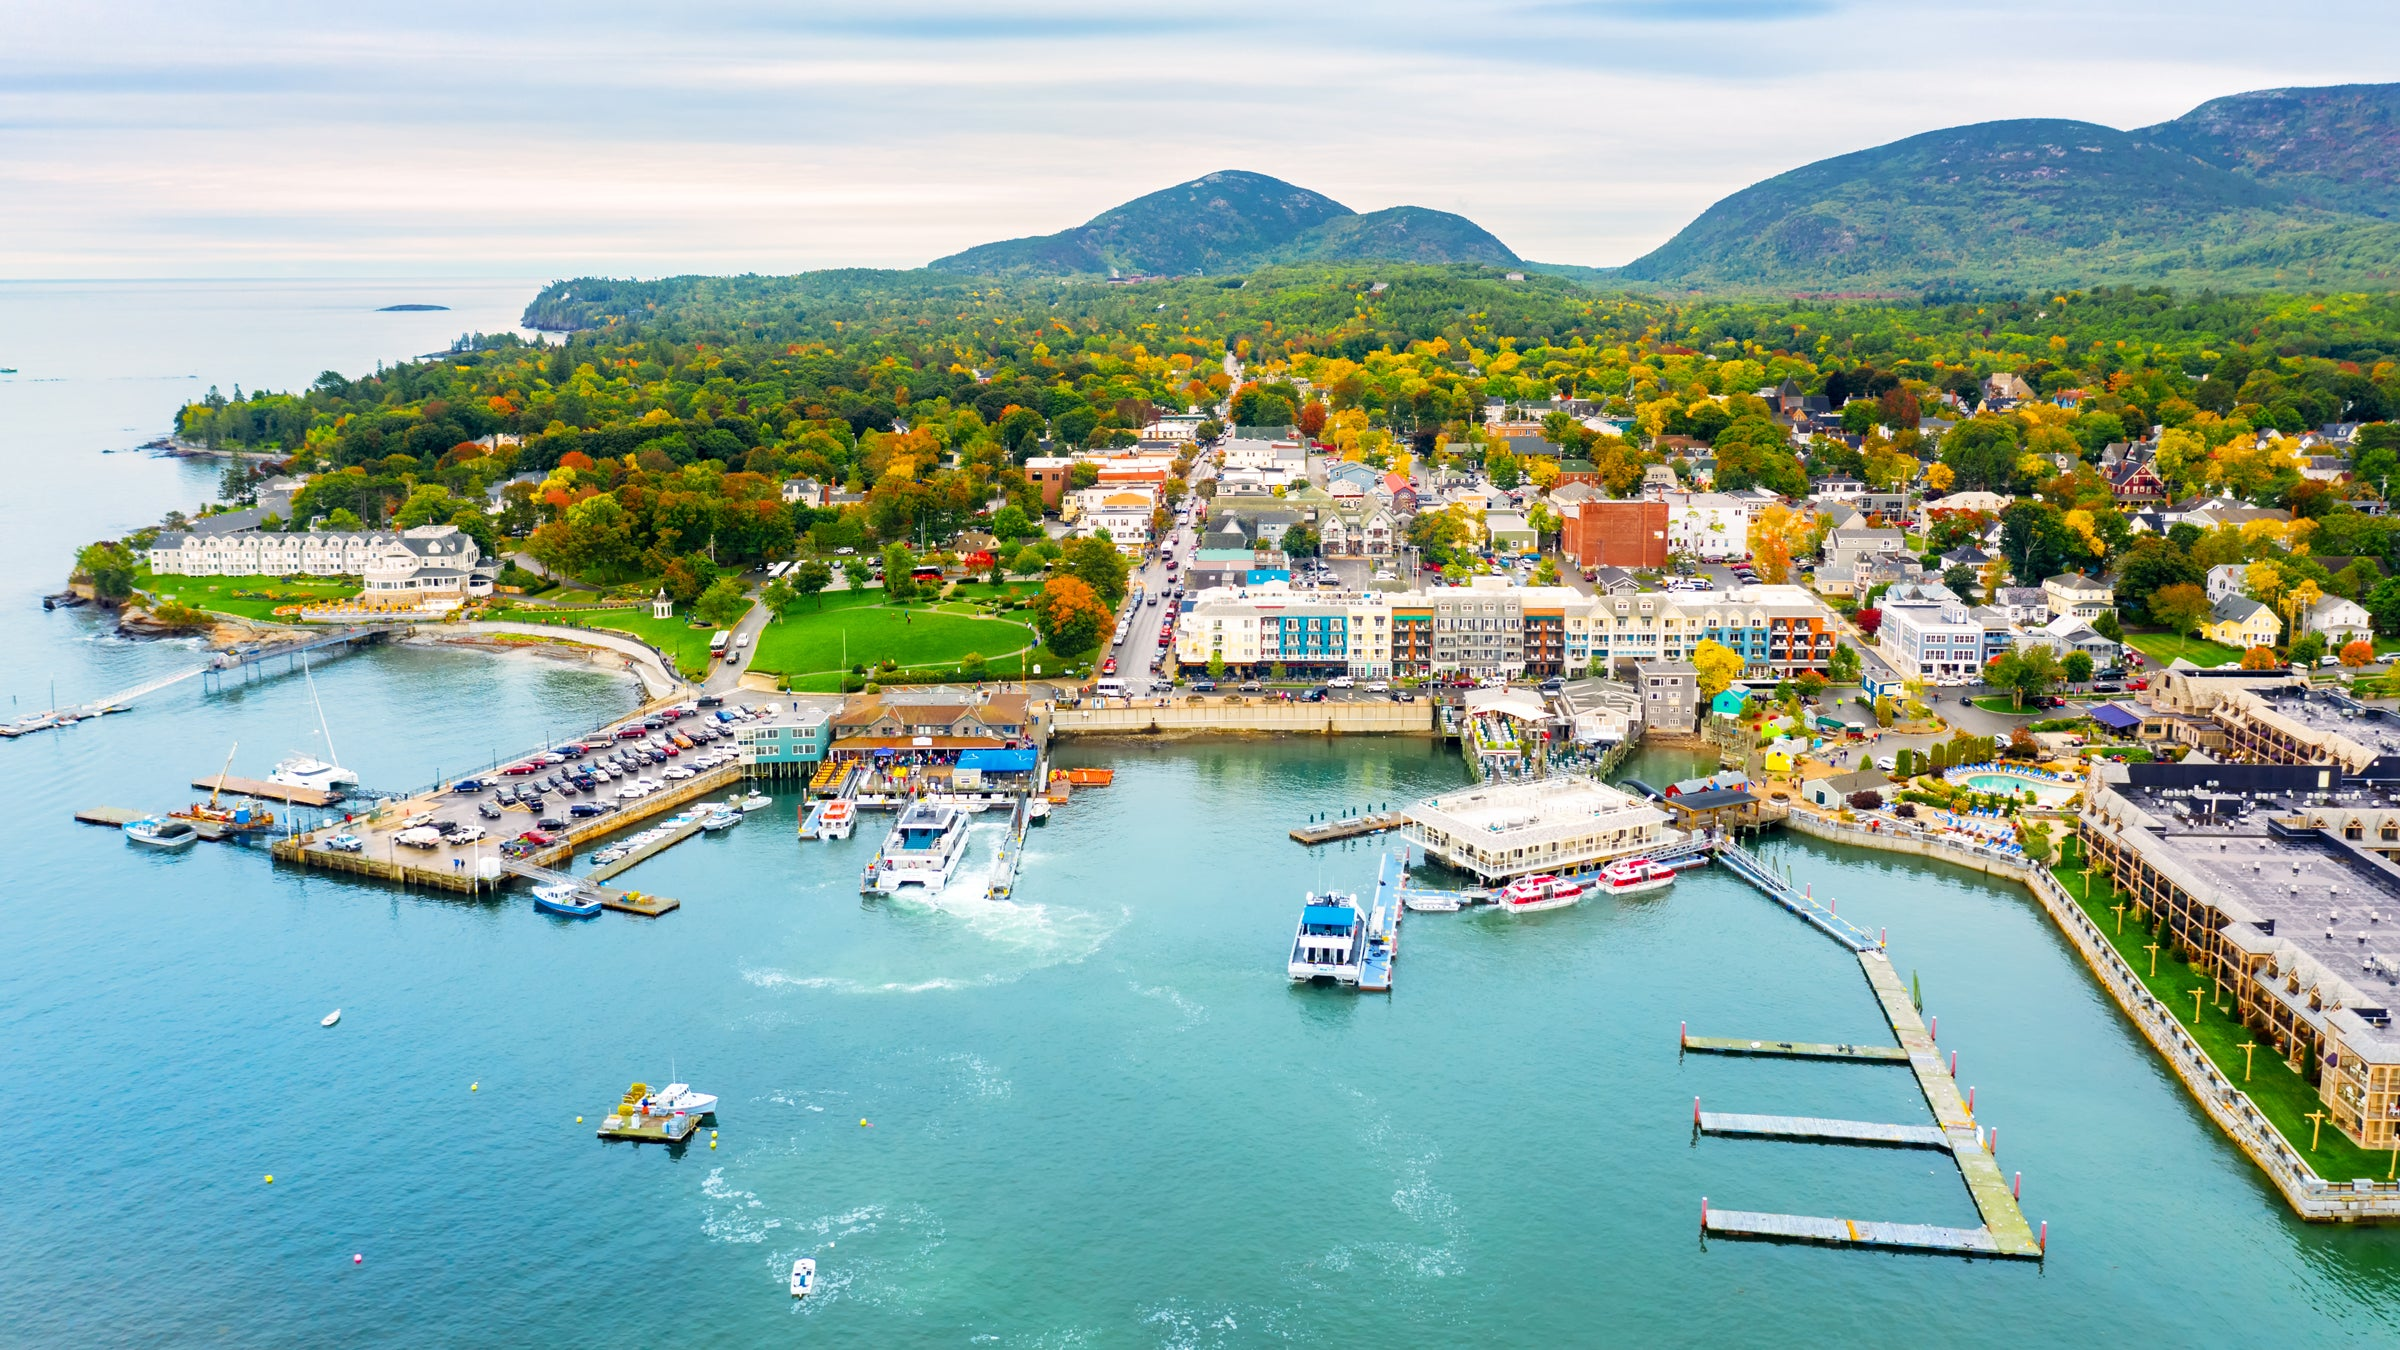 Aerial view of Bar Harbor, Maine